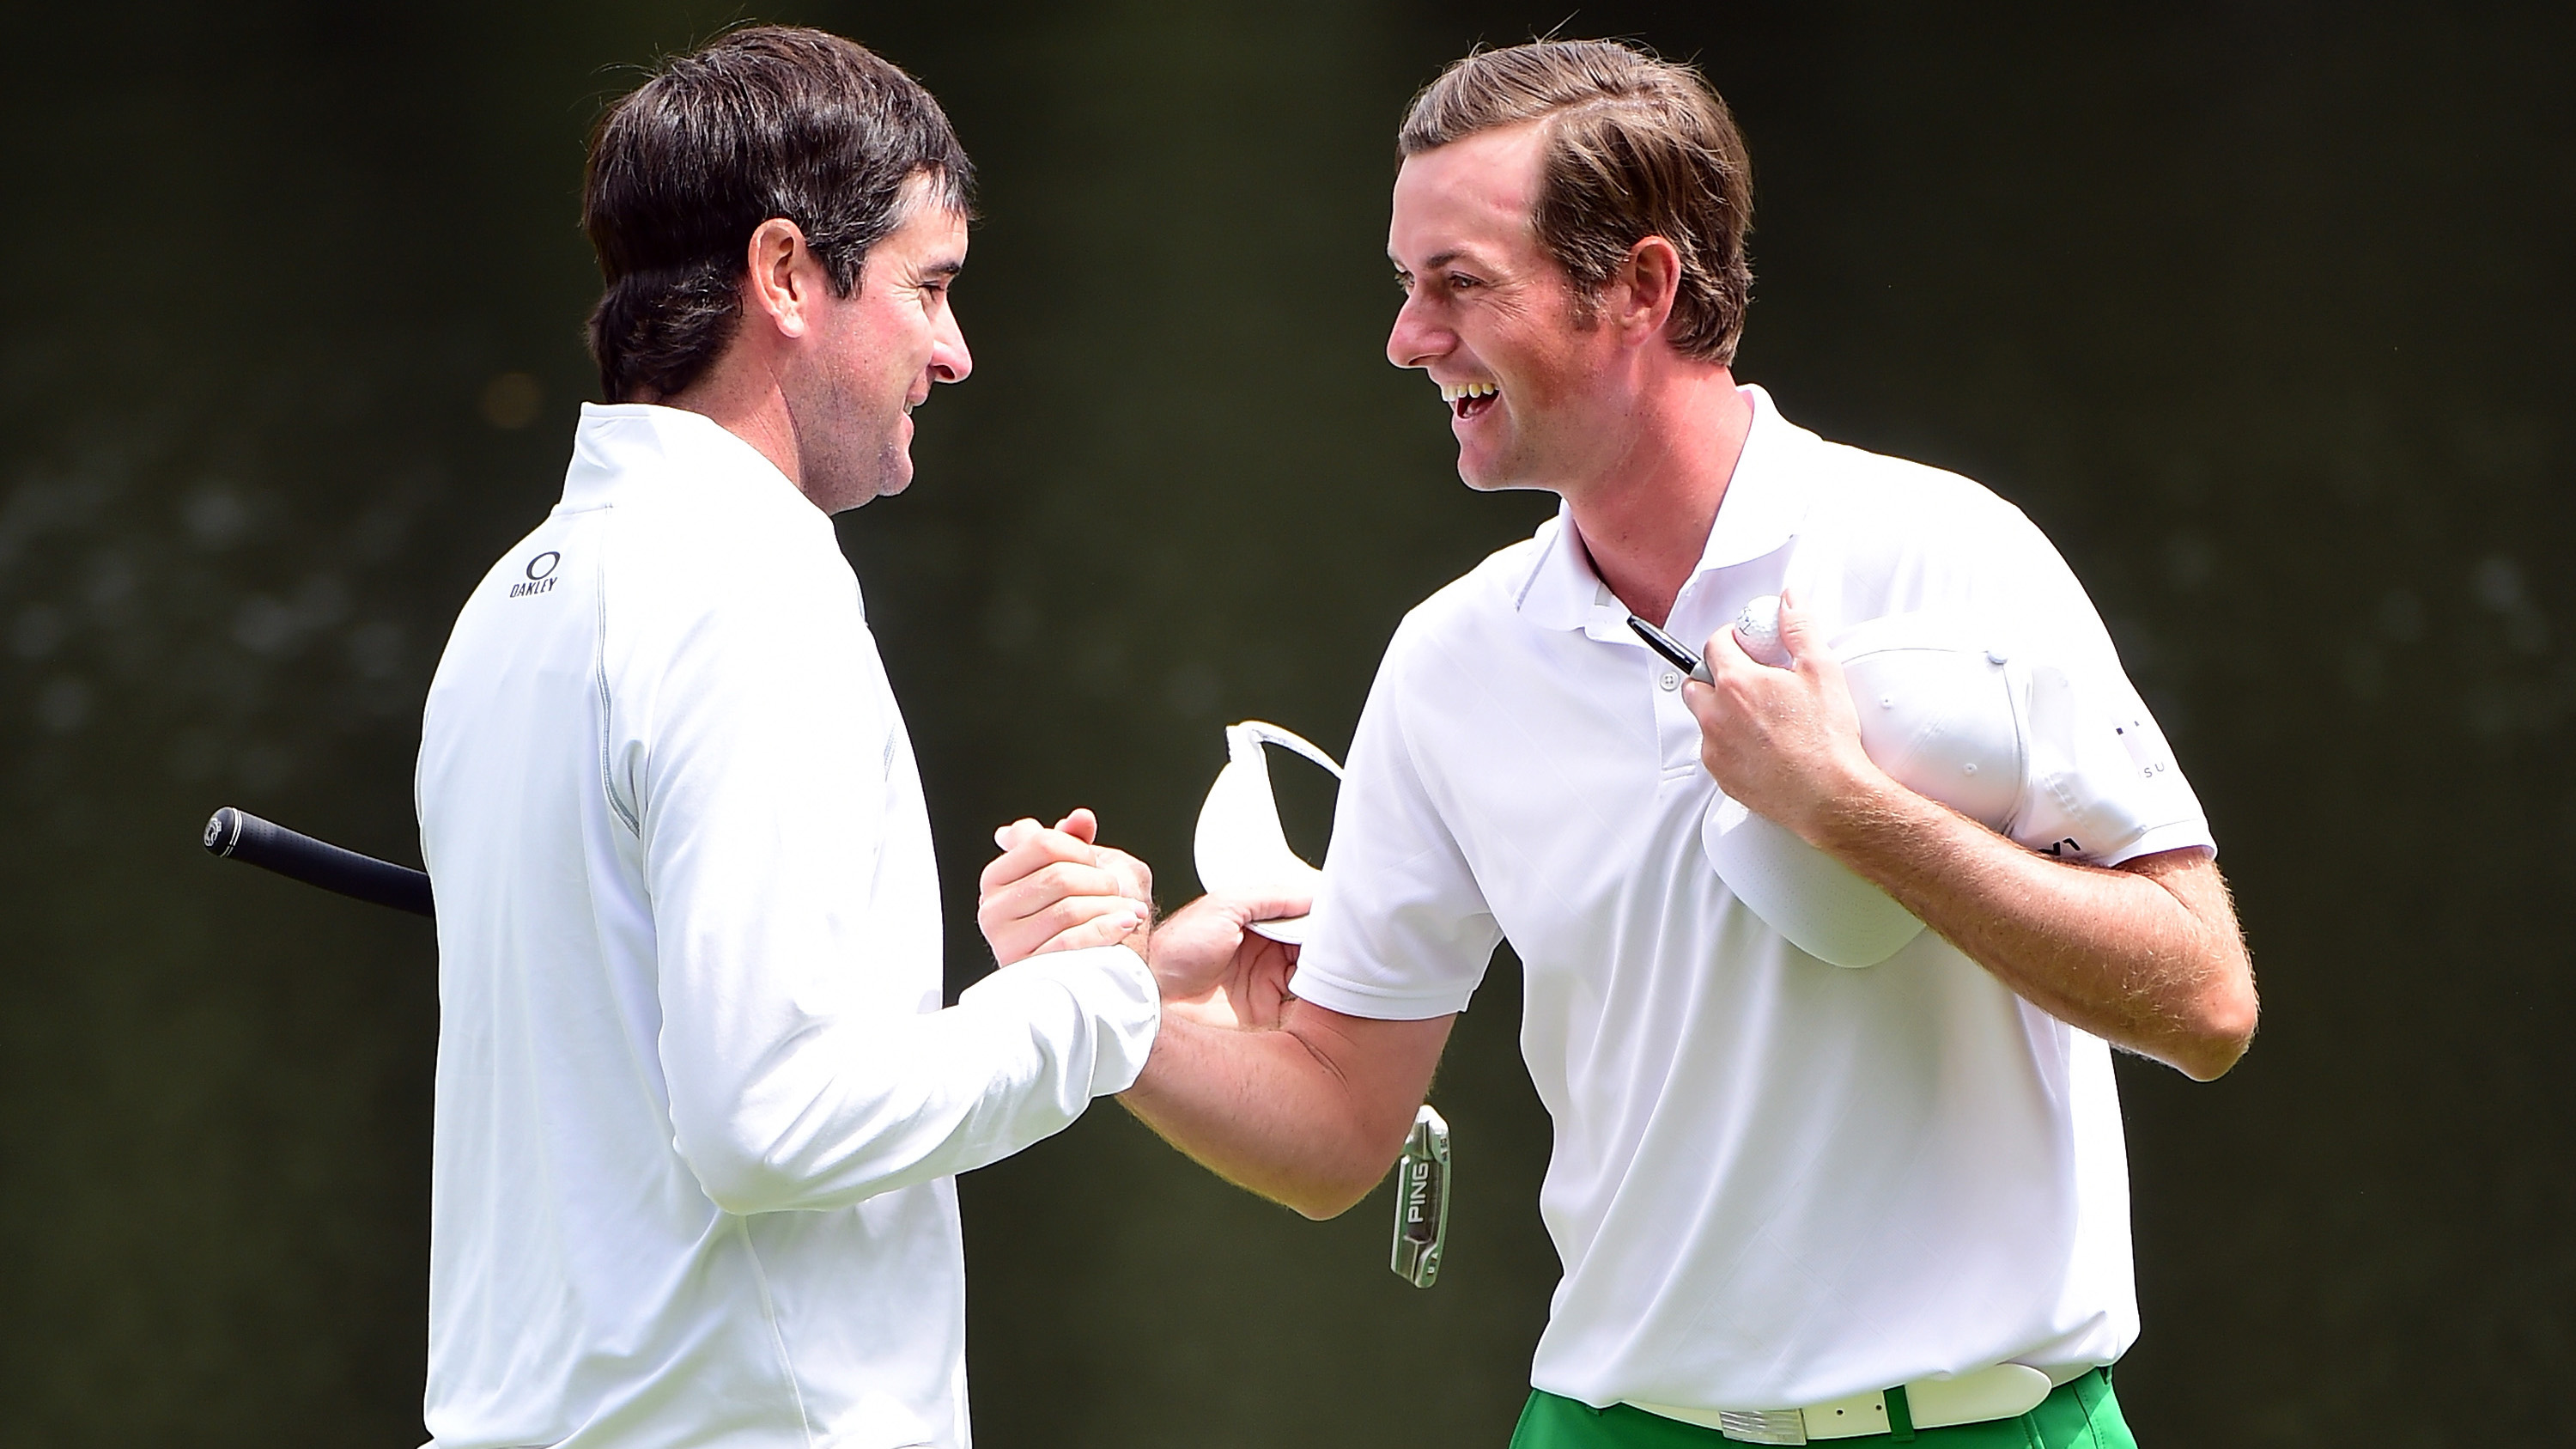 AUGUSTA, GEORGIA - APRIL 06:  Bubba Watson of the United States and Webb Simpson of the United States embrace on the ninth green during the Par 3 Contest prior to the start of the 2016 Masters Tournament at Augusta National Golf Club on April 6, 2016 in Augusta, Georgia.  (Photo by Harry How/Getty Images)